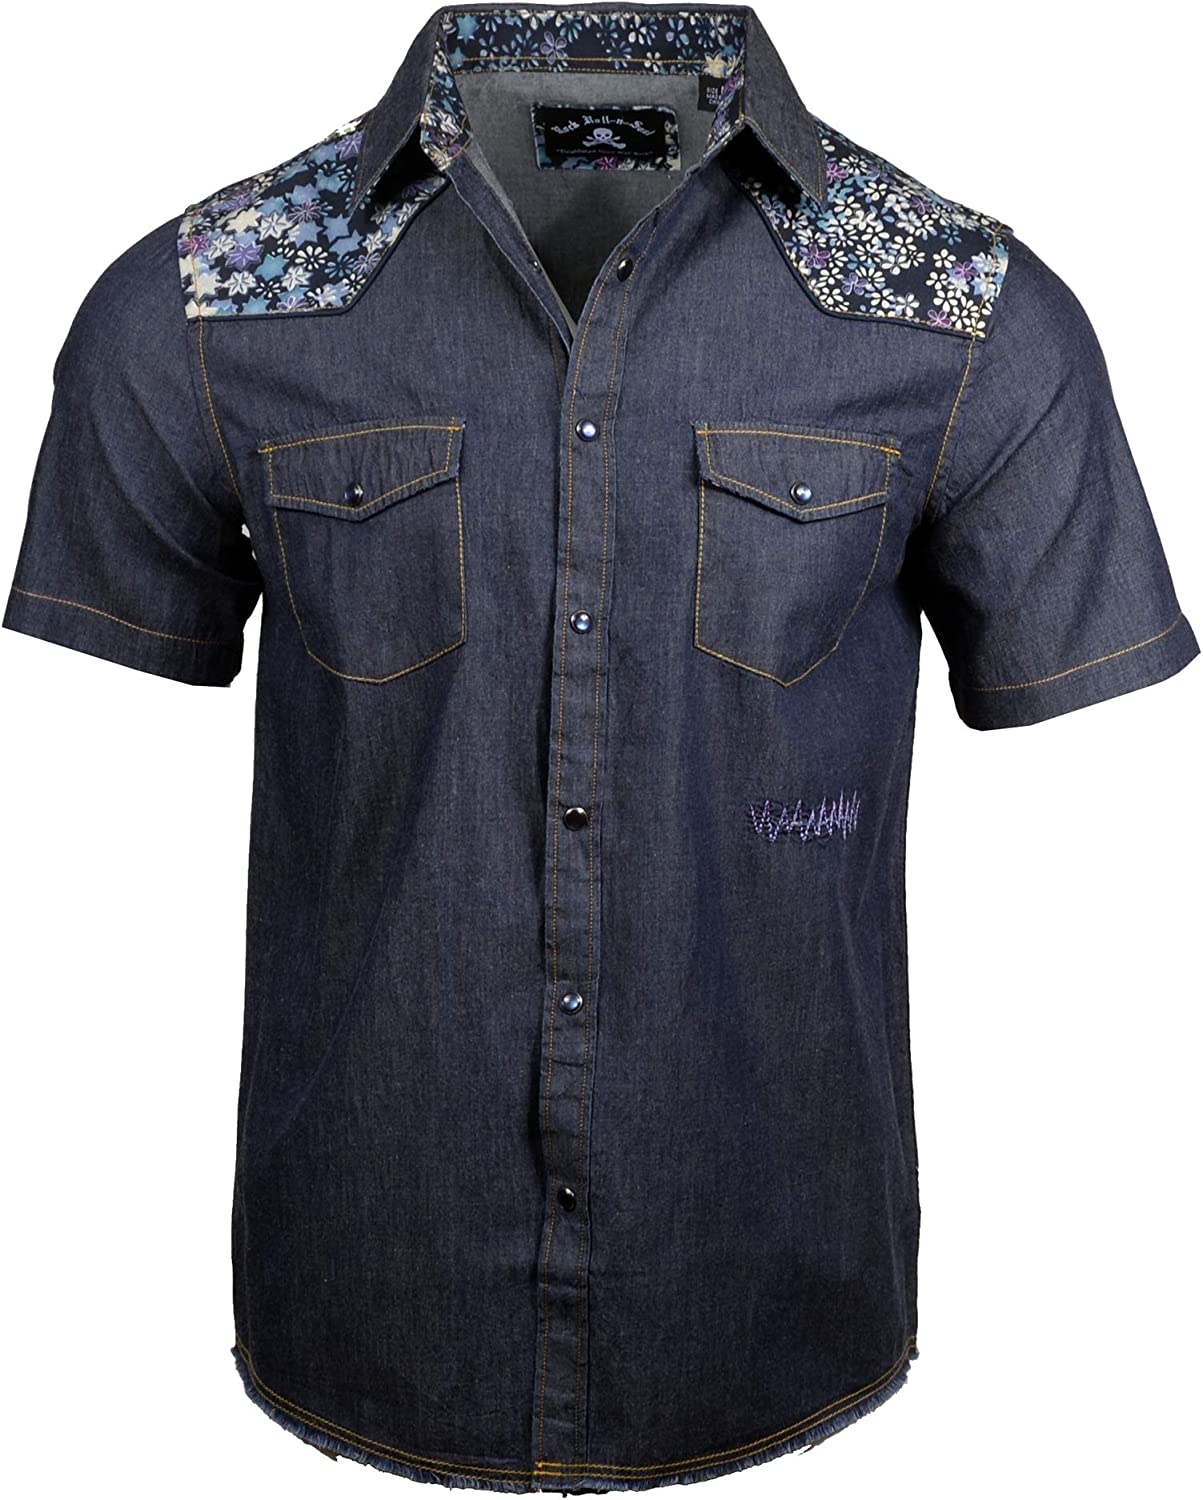 Rock Roll n Soul Mens Black Dog Short Sleeve Button Down Indigo Western Shirt 731SSIN